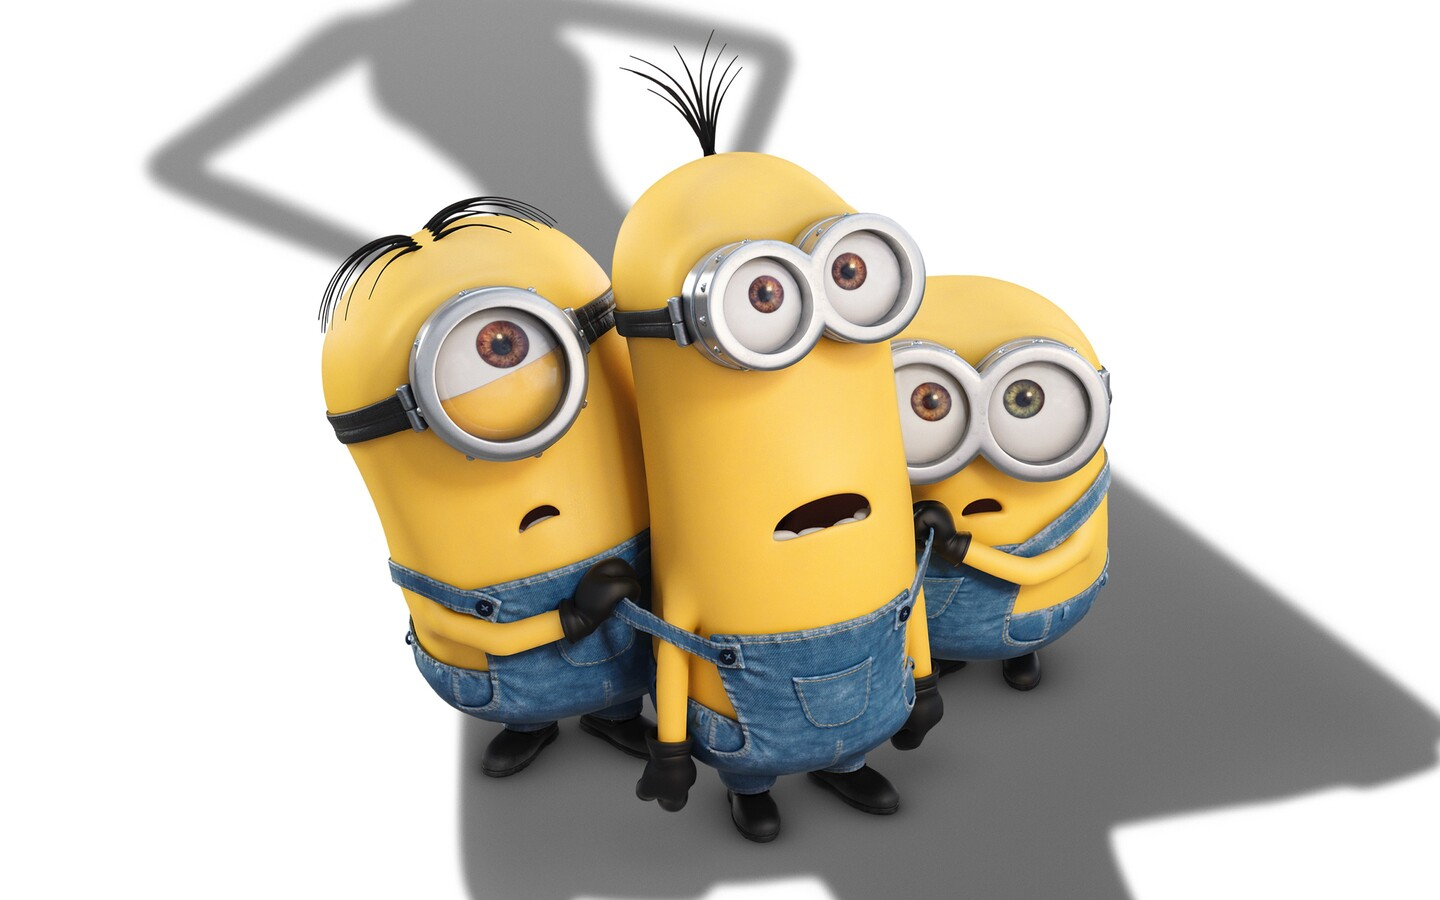 1440x900 Cute Minions 1440x900 Resolution Hd 4k Wallpapers Images